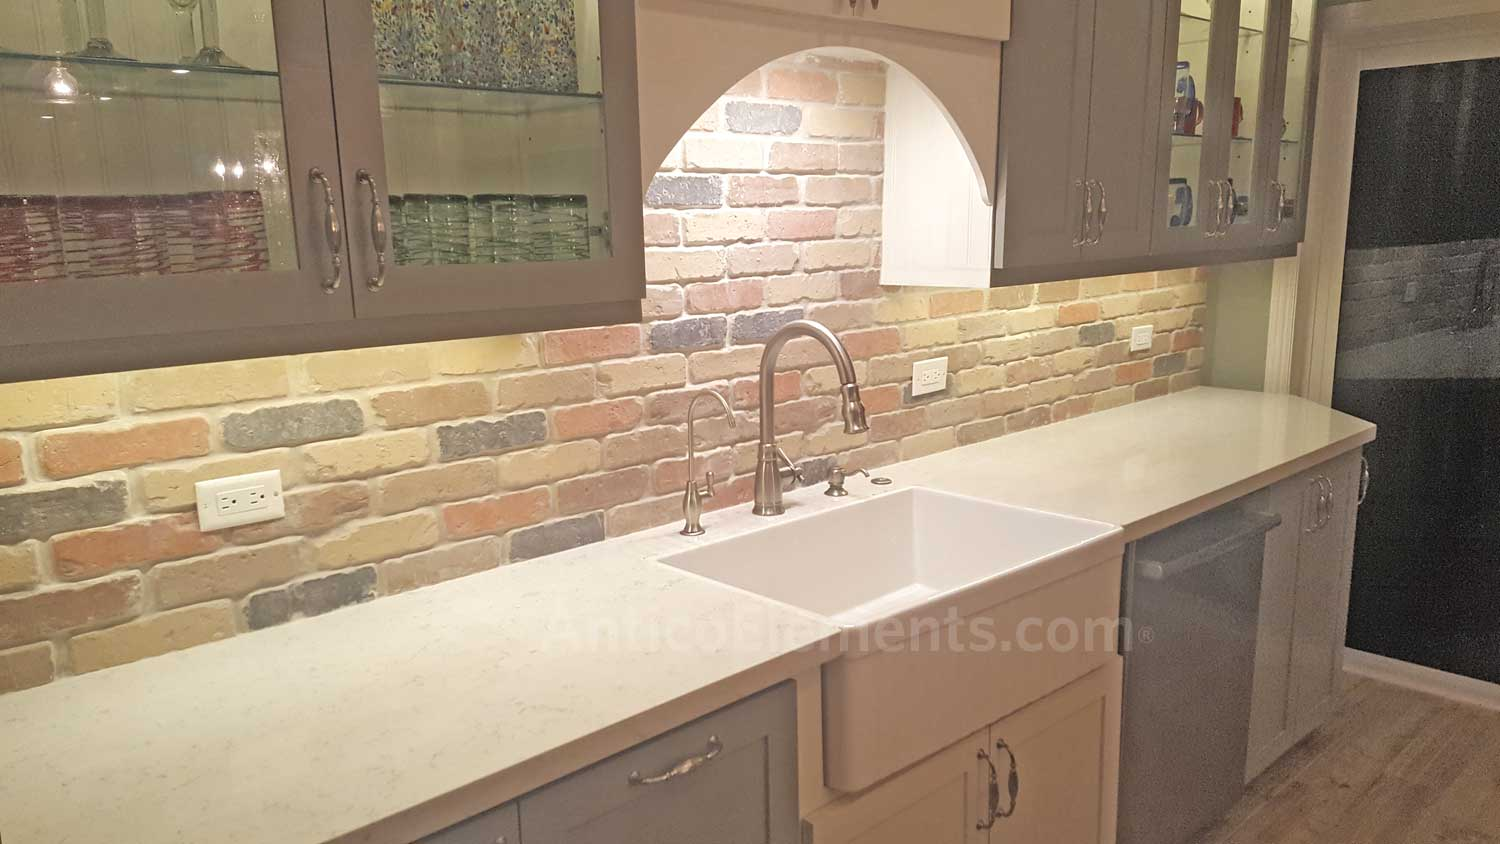 The Completed Job. Brick Backsplash.